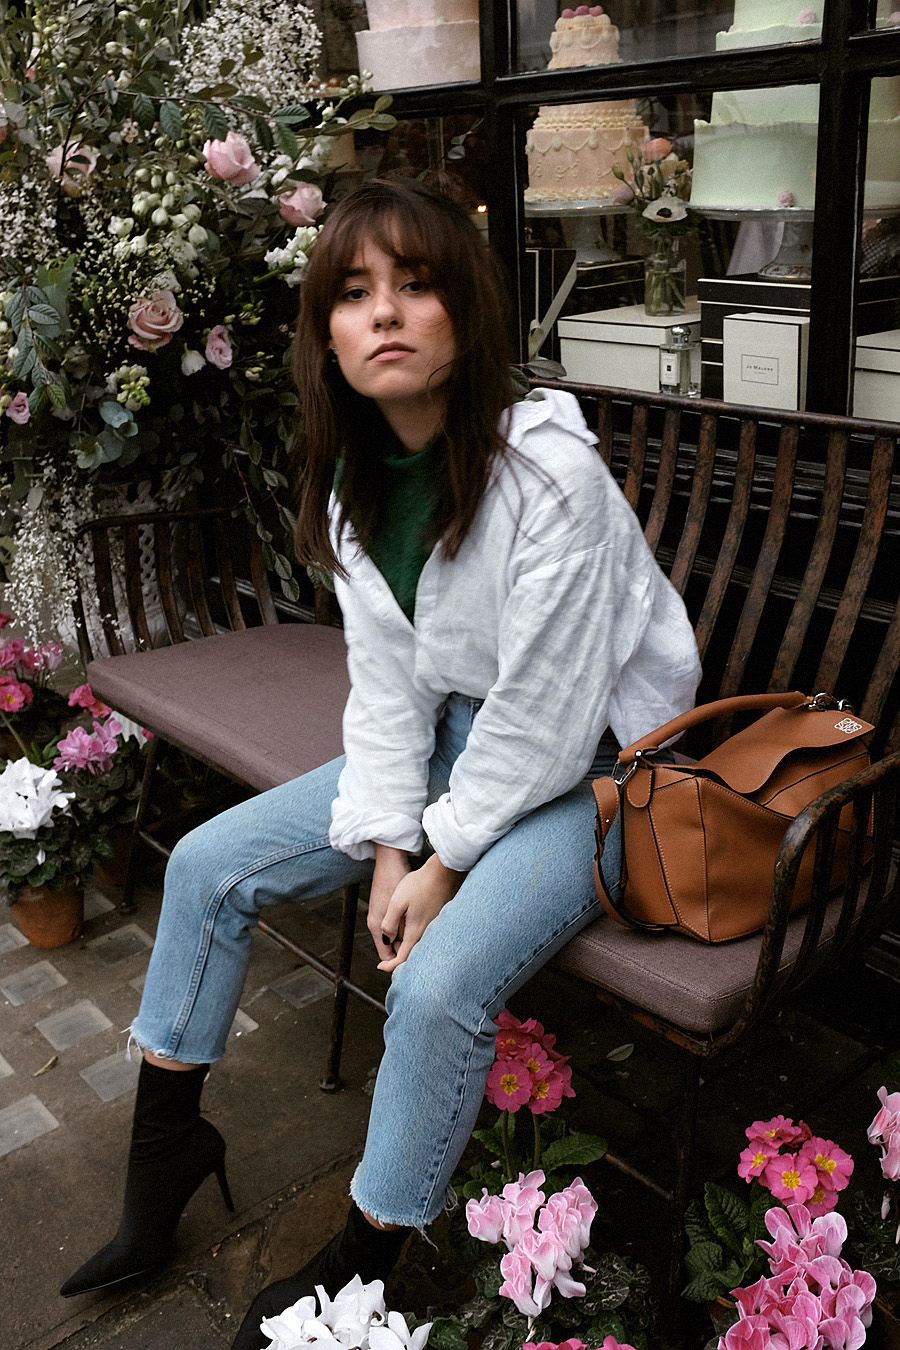 Nisi is wearing: Loewe Puzzle bag, Green lace top, White shirt, Mom jeans, Stretch boots